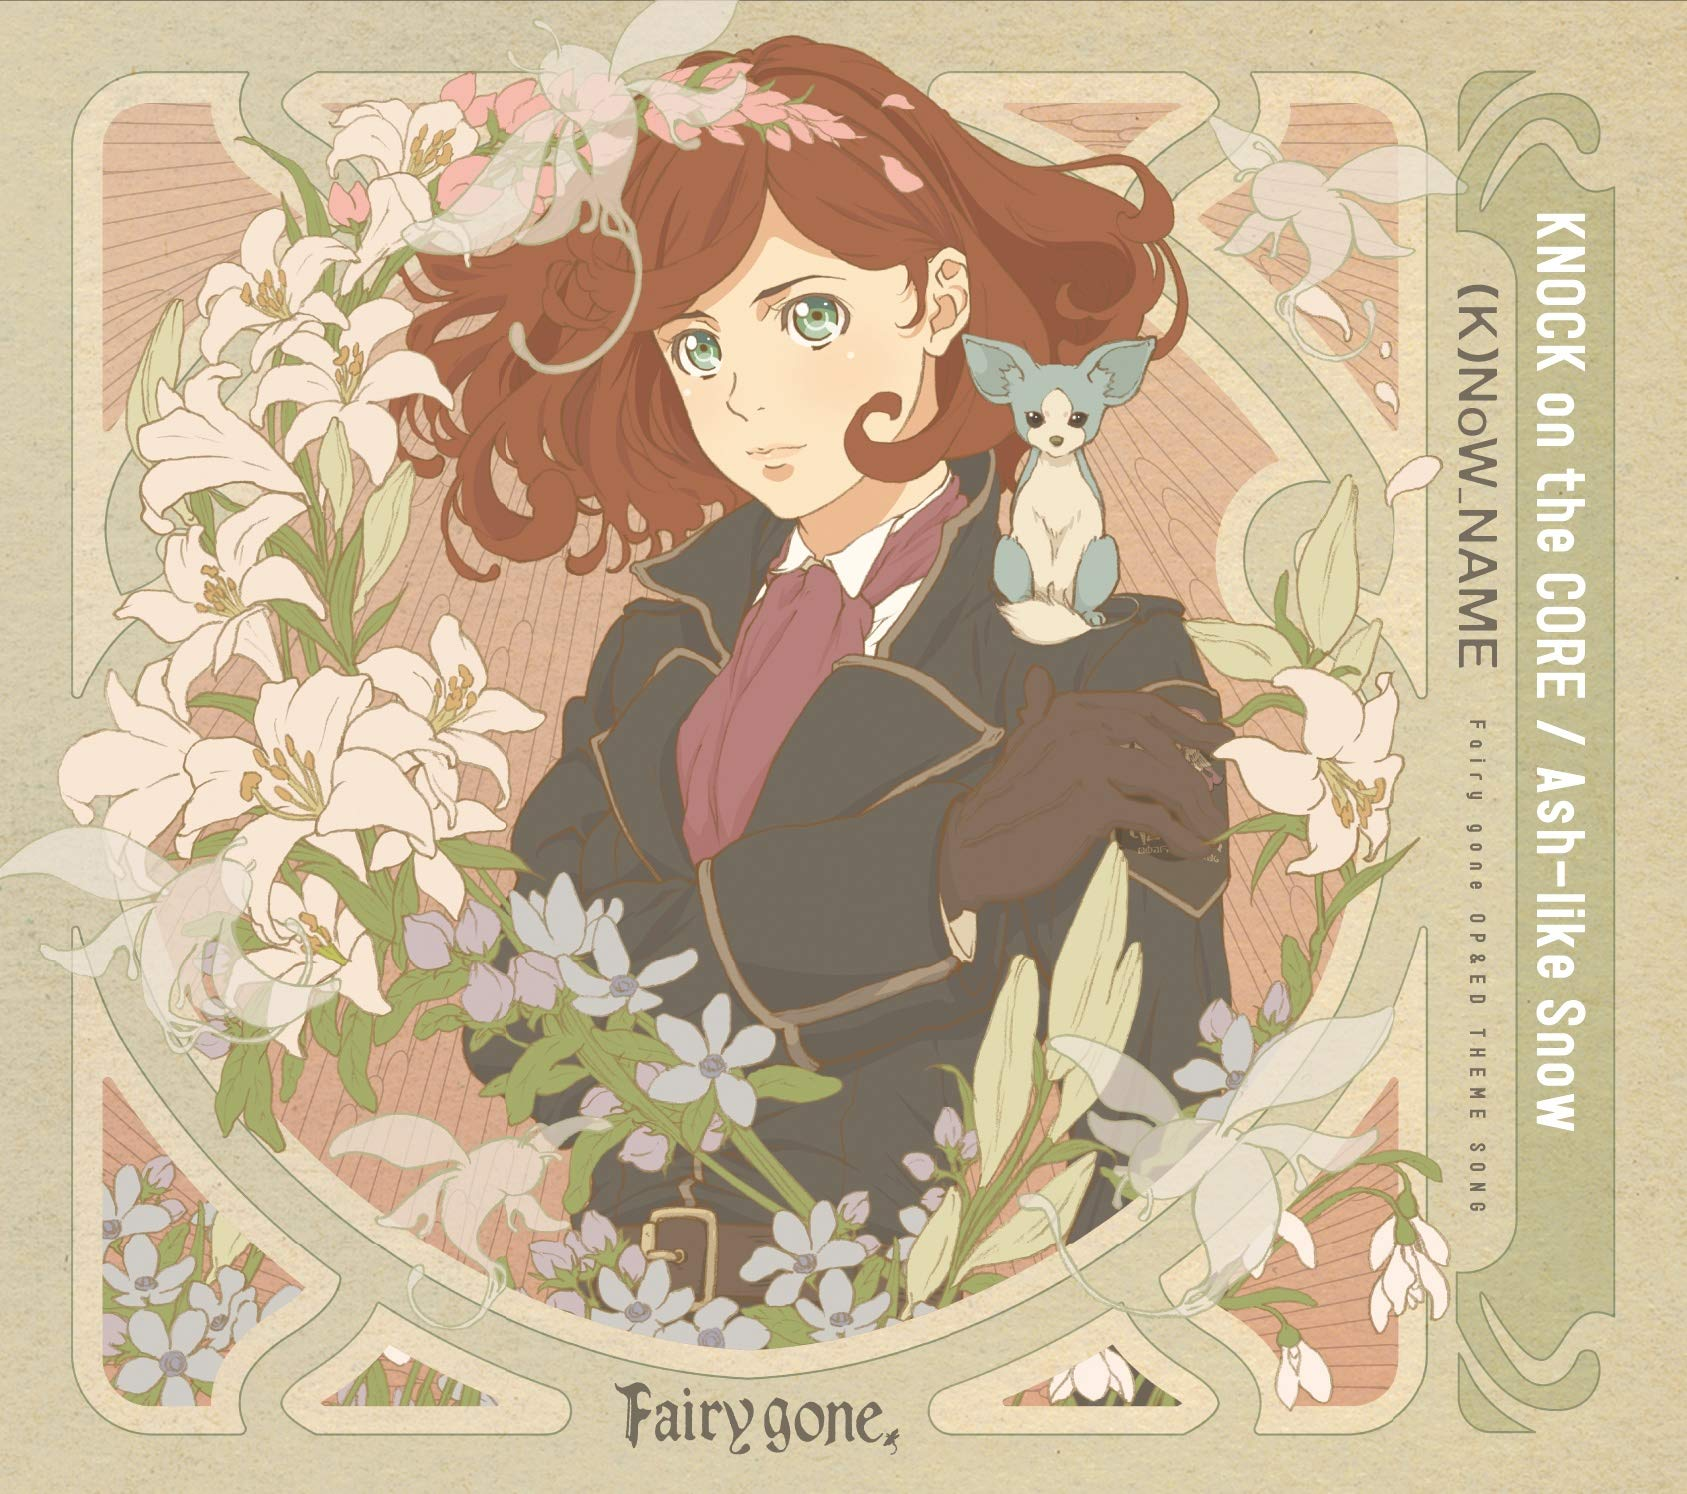 (K)NoW_NAME – TVアニメ『Fairy gone フェアリーゴーン』OP&ED THEME SONG「KNOCK on the CORE/Ash-like Snow」 [FLAC 24bit/96kHz]